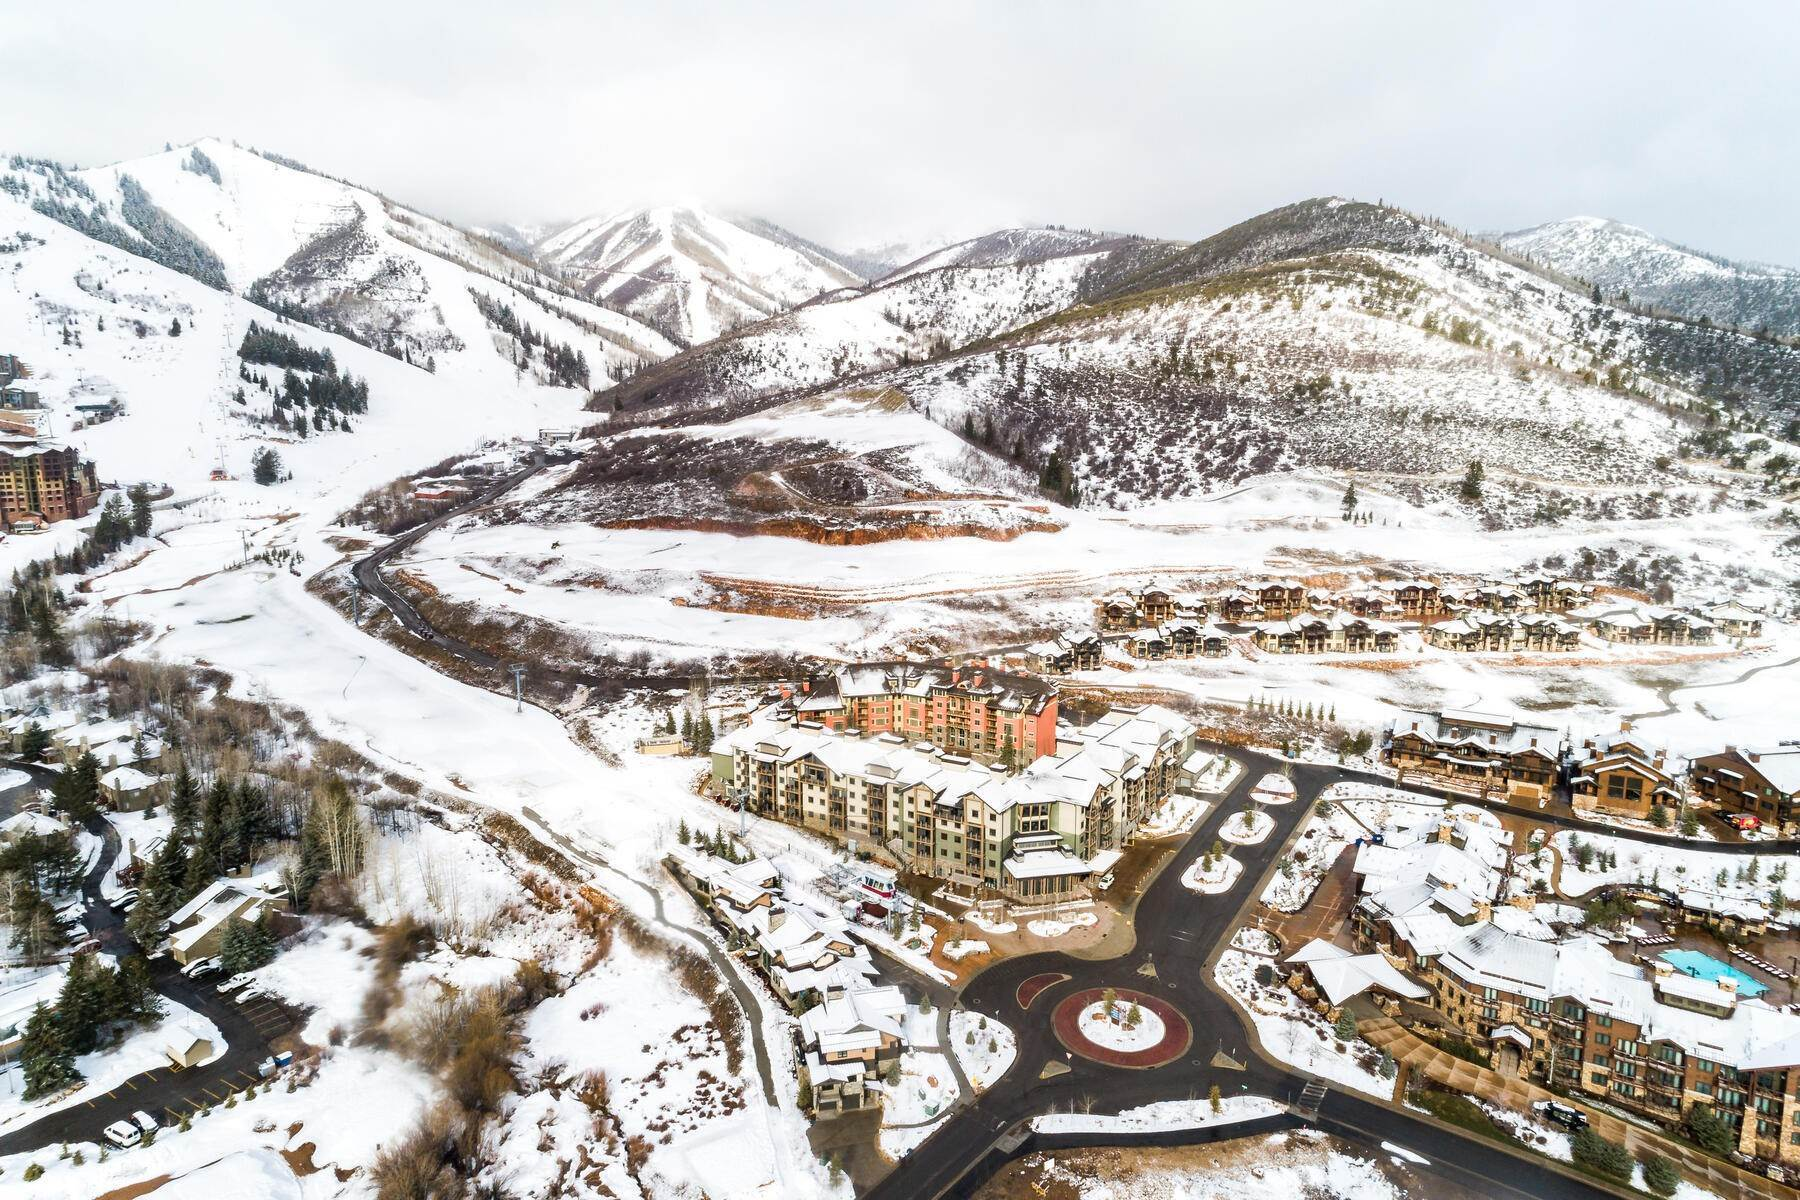 10. Condominiums for Sale at Introducing Park City's Newest Boutique Ski Hotel, The Ascent Park City! 4080 N Cooper Lane #312 Park City, Utah 84098 United States